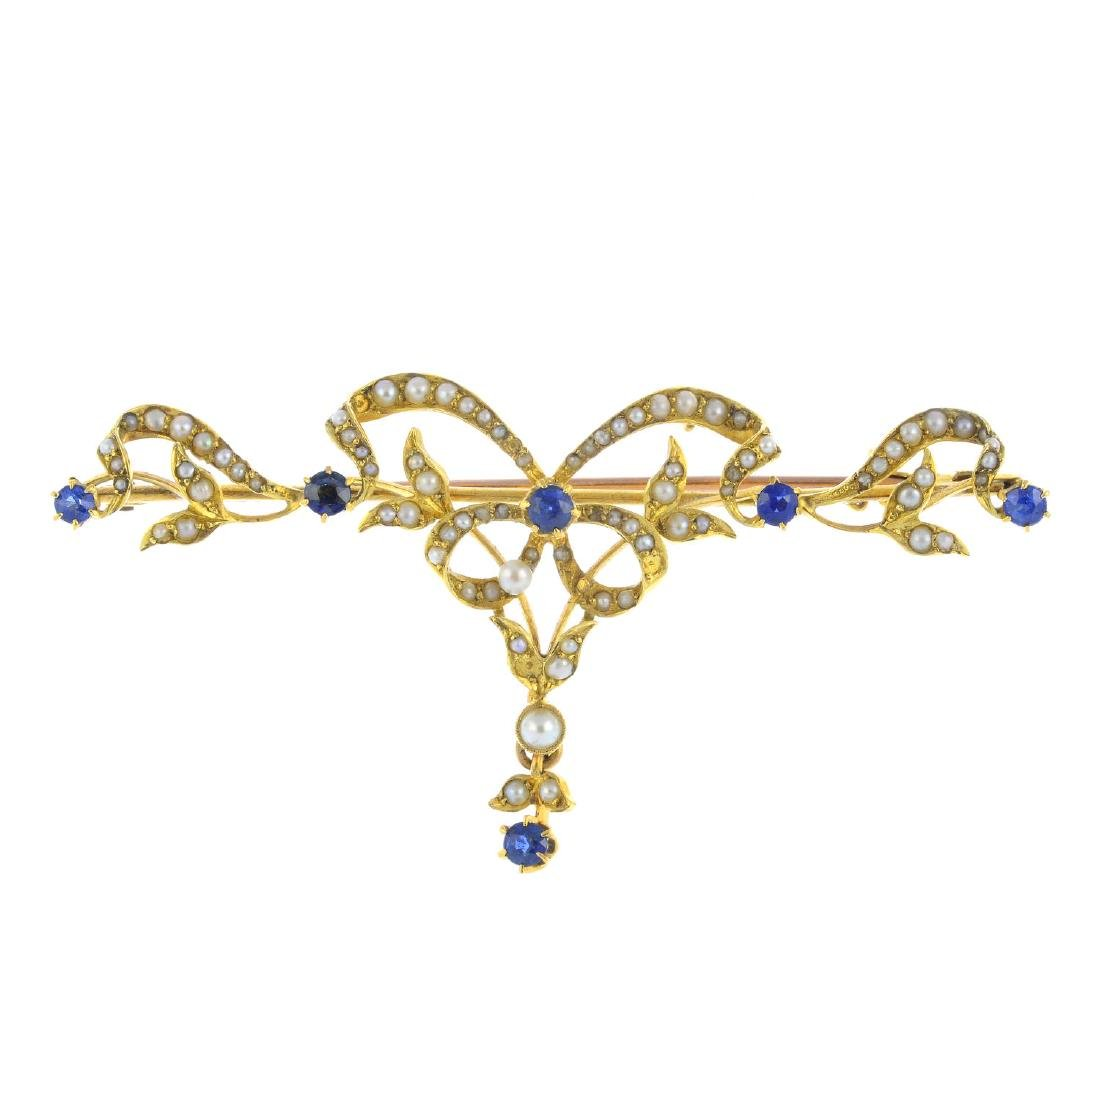 An early 20th century 15ct gold sapphire and seed pearl